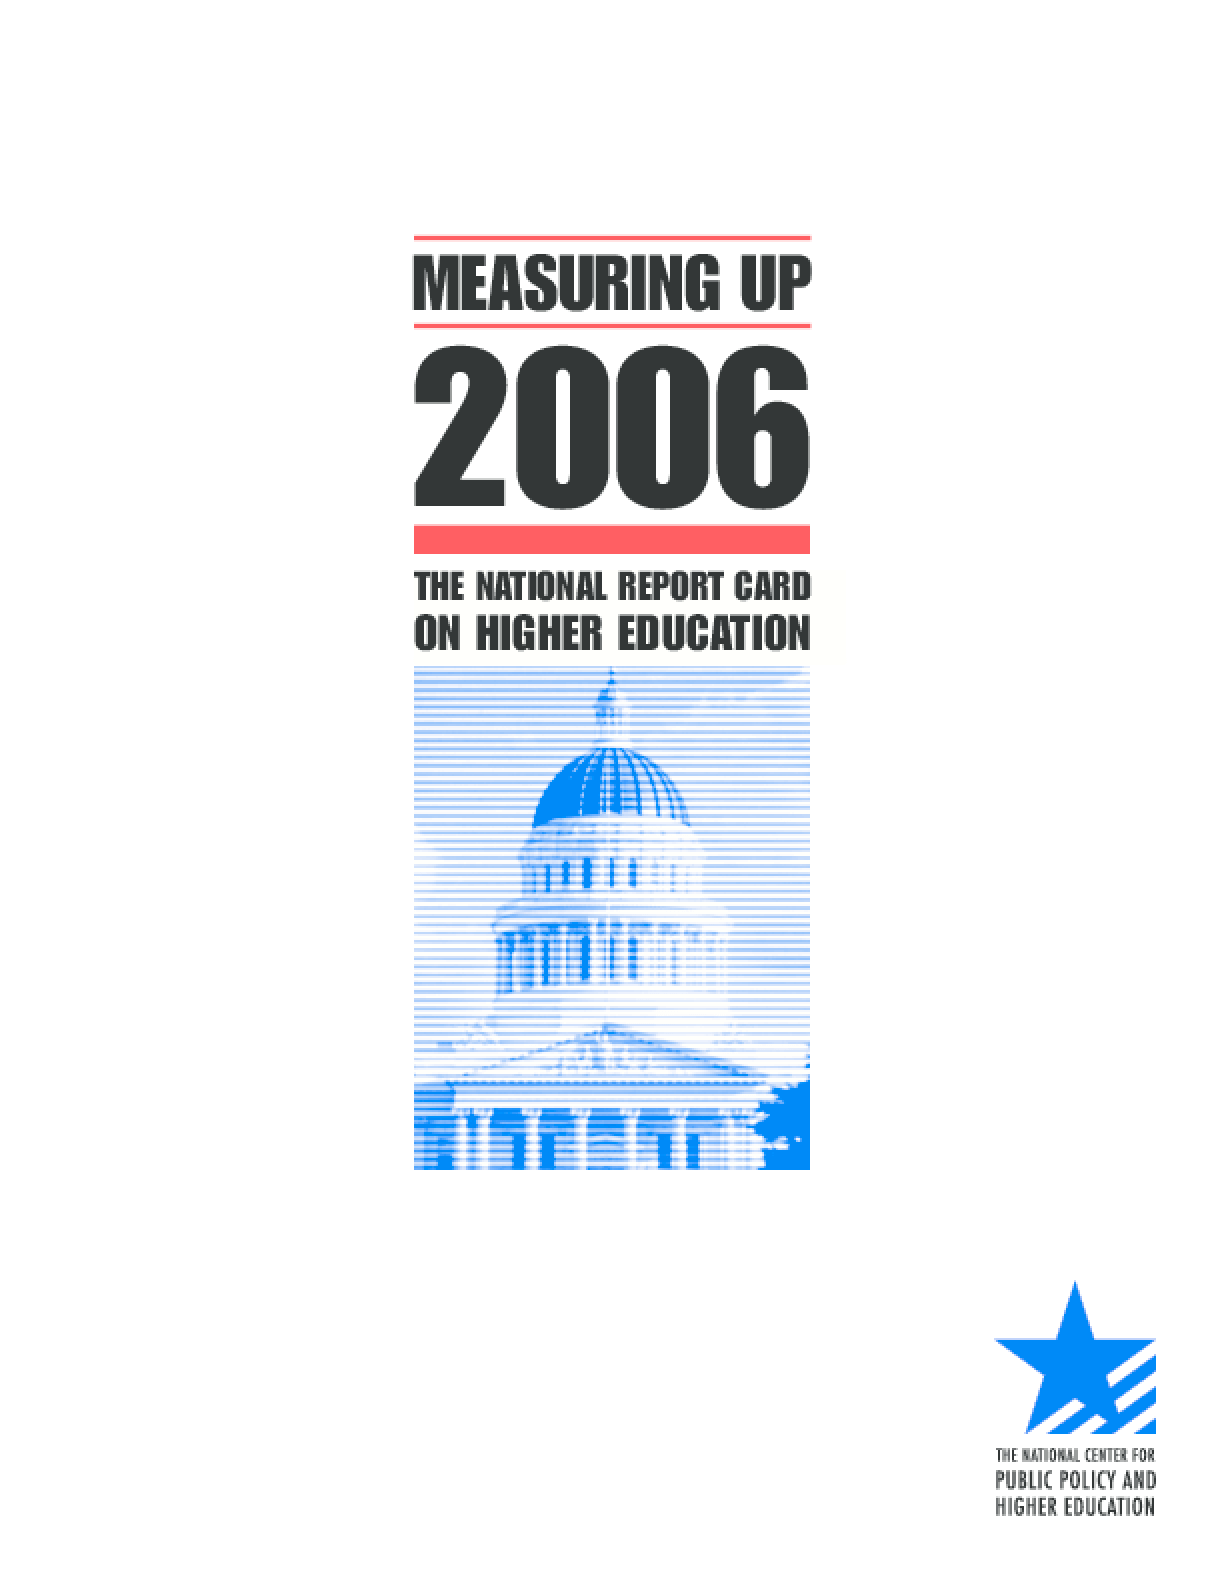 Measuring Up 2006: The National Report Card on Higher Education